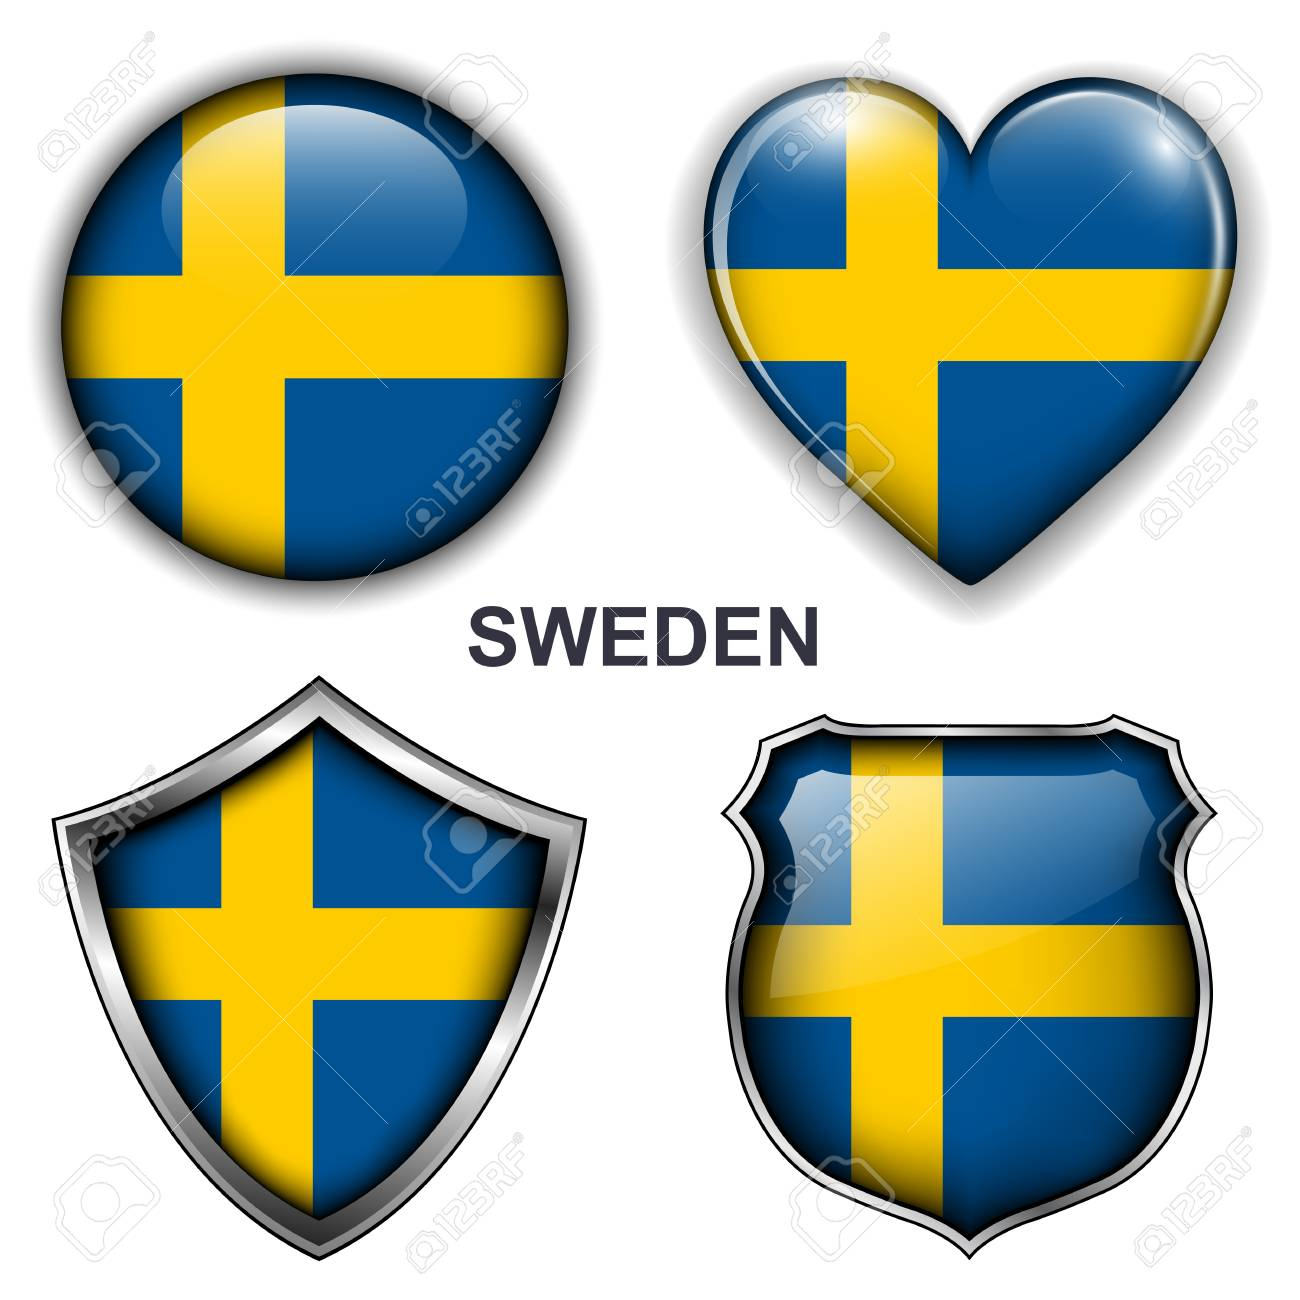 Sweden flag icons, buttons Stock Vector - 20344005